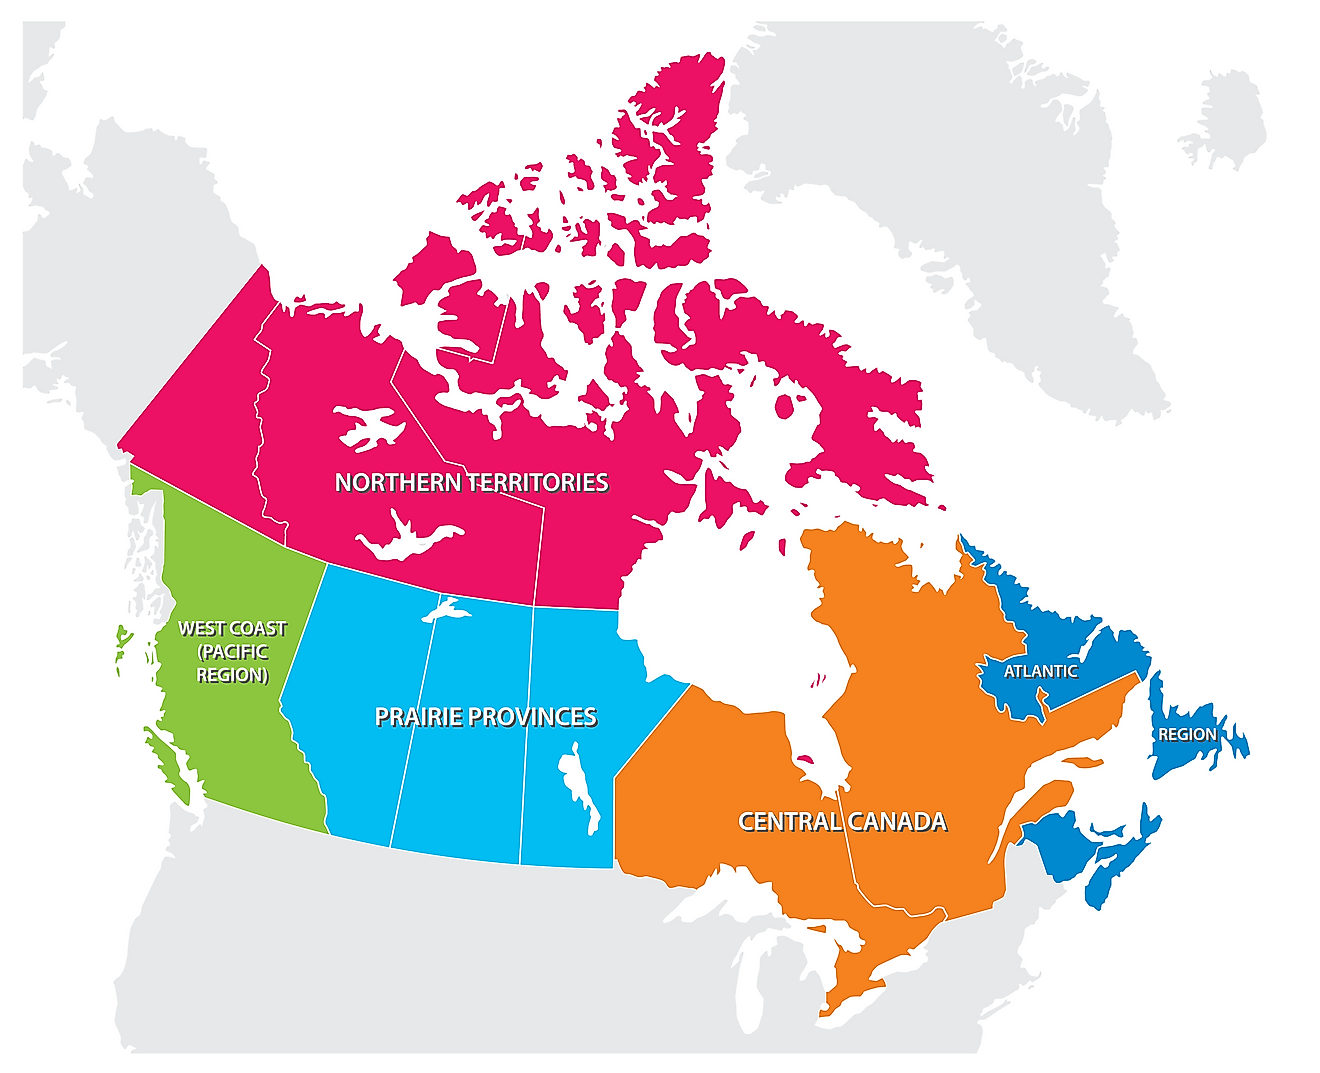 The 5 Regions Of Canada